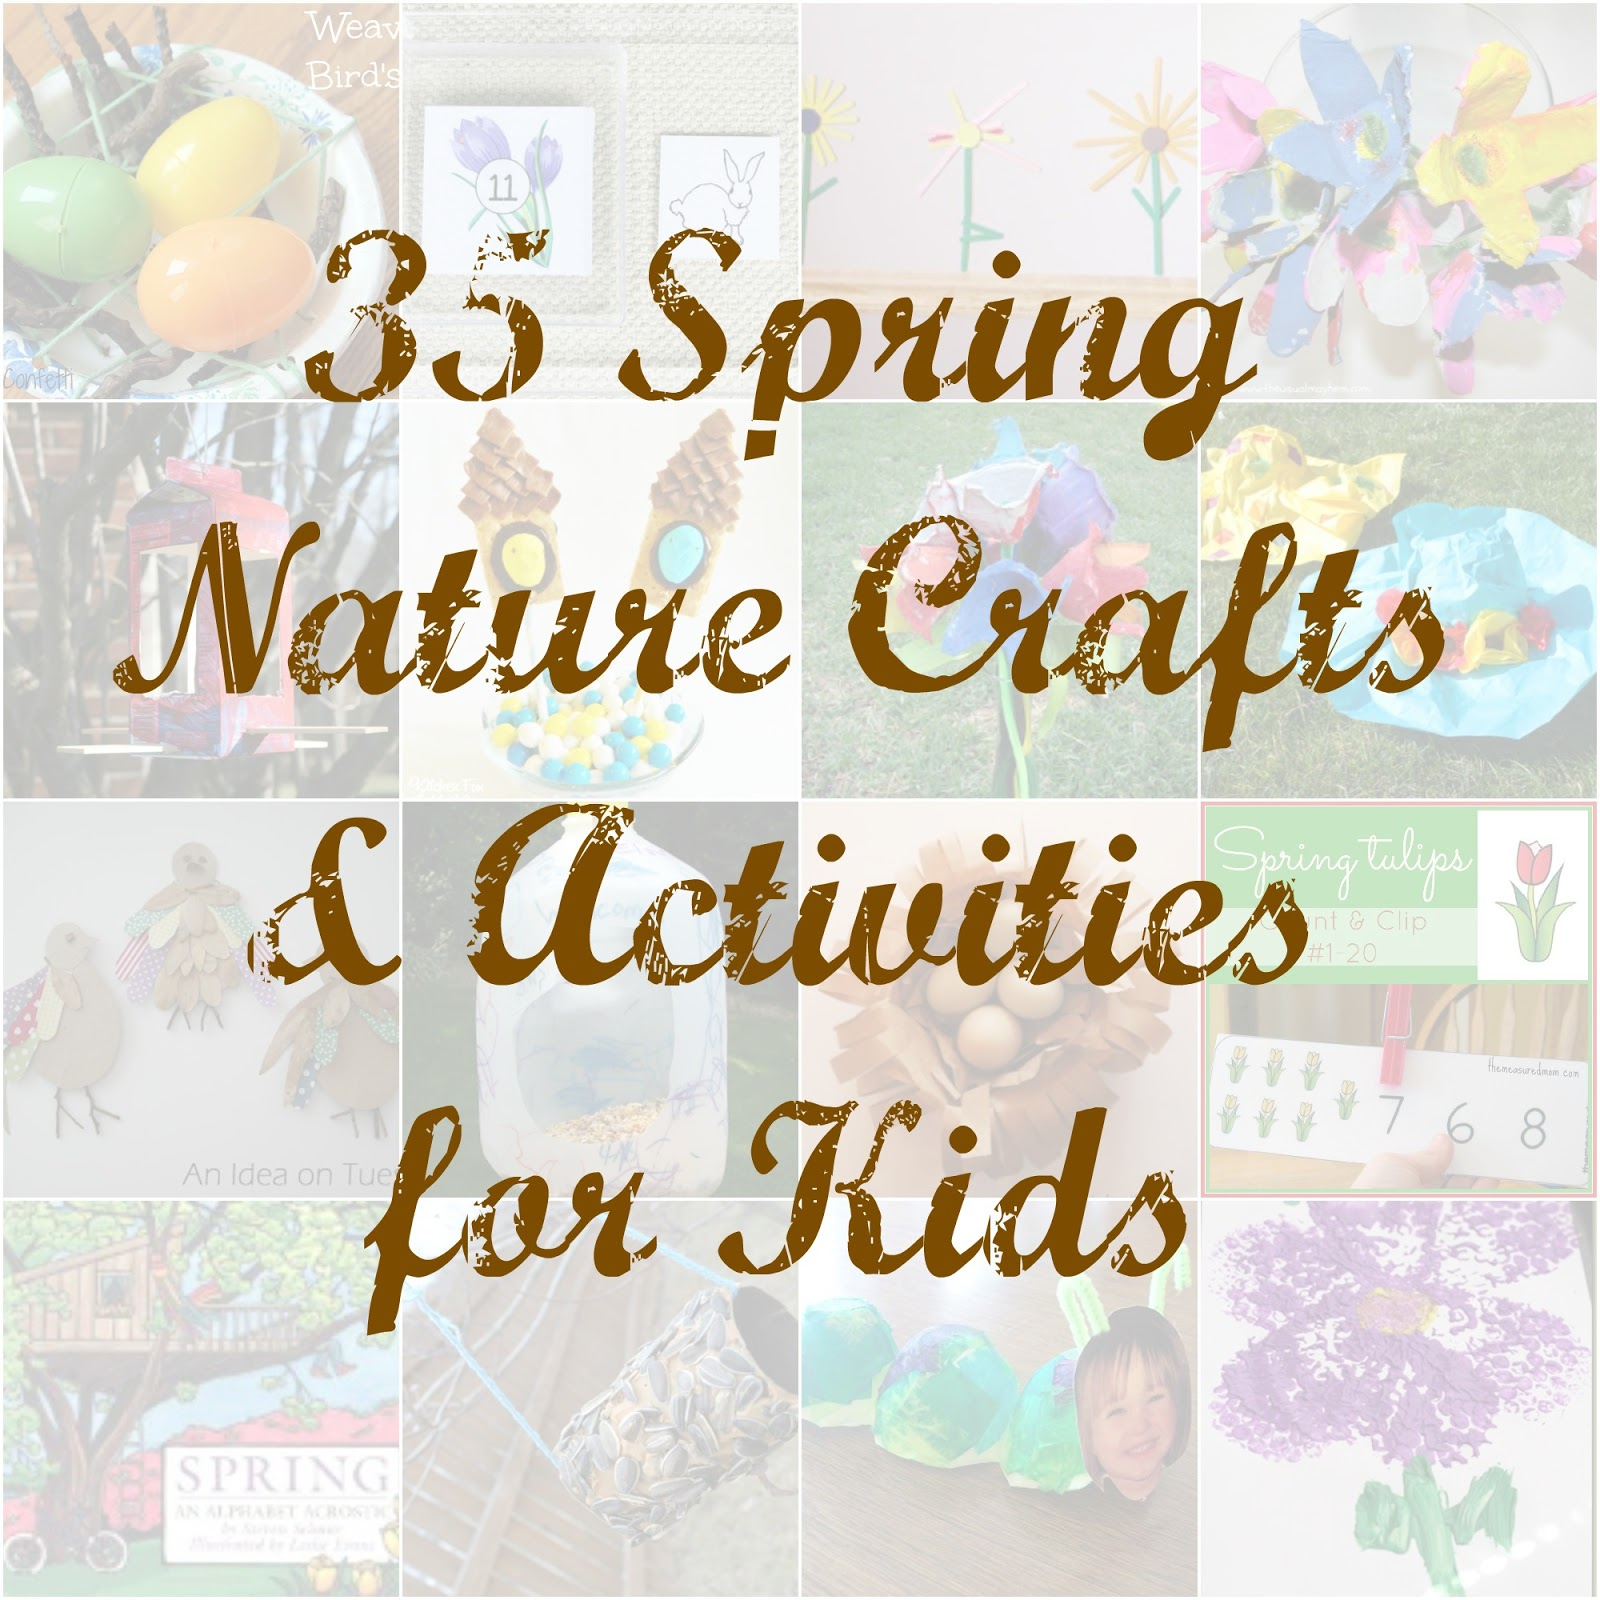 Featured 5 Spring Projects: 35 Spring Nature Crafts For Kids: Kid's Co-op